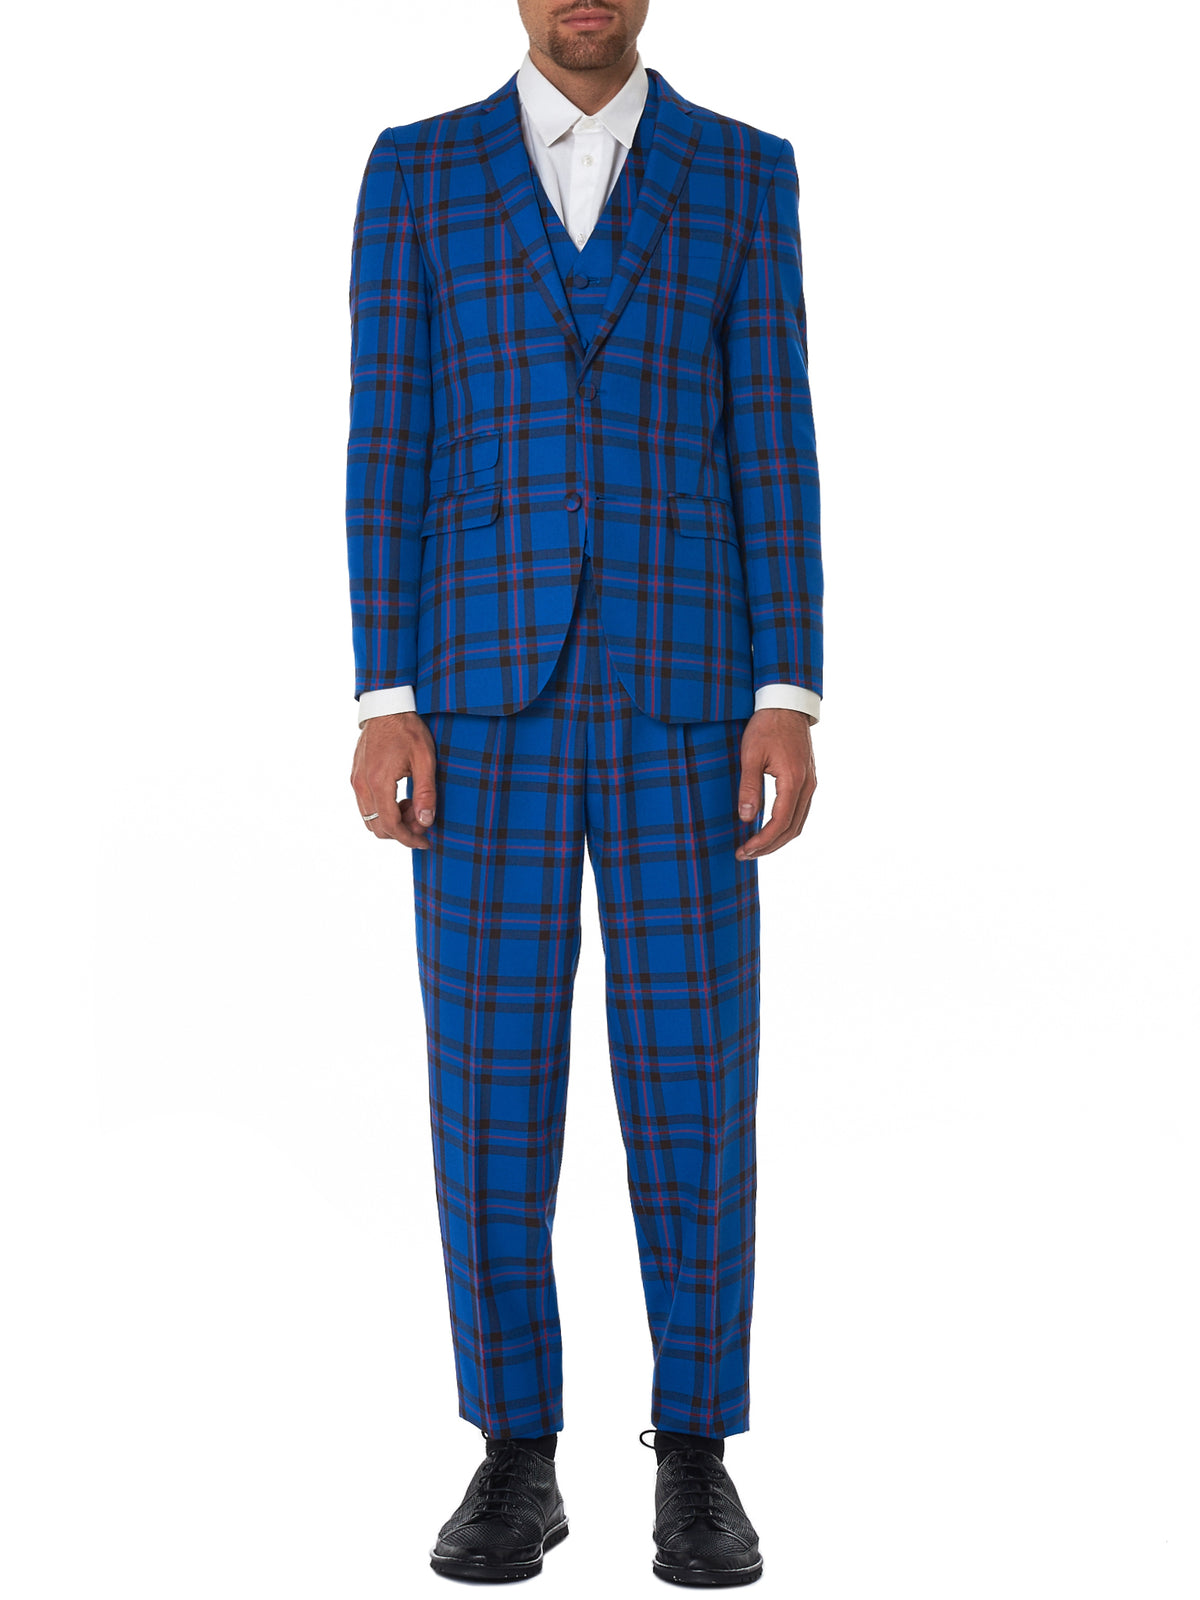 Kidill Plaid Suit - Hlorenzo Front